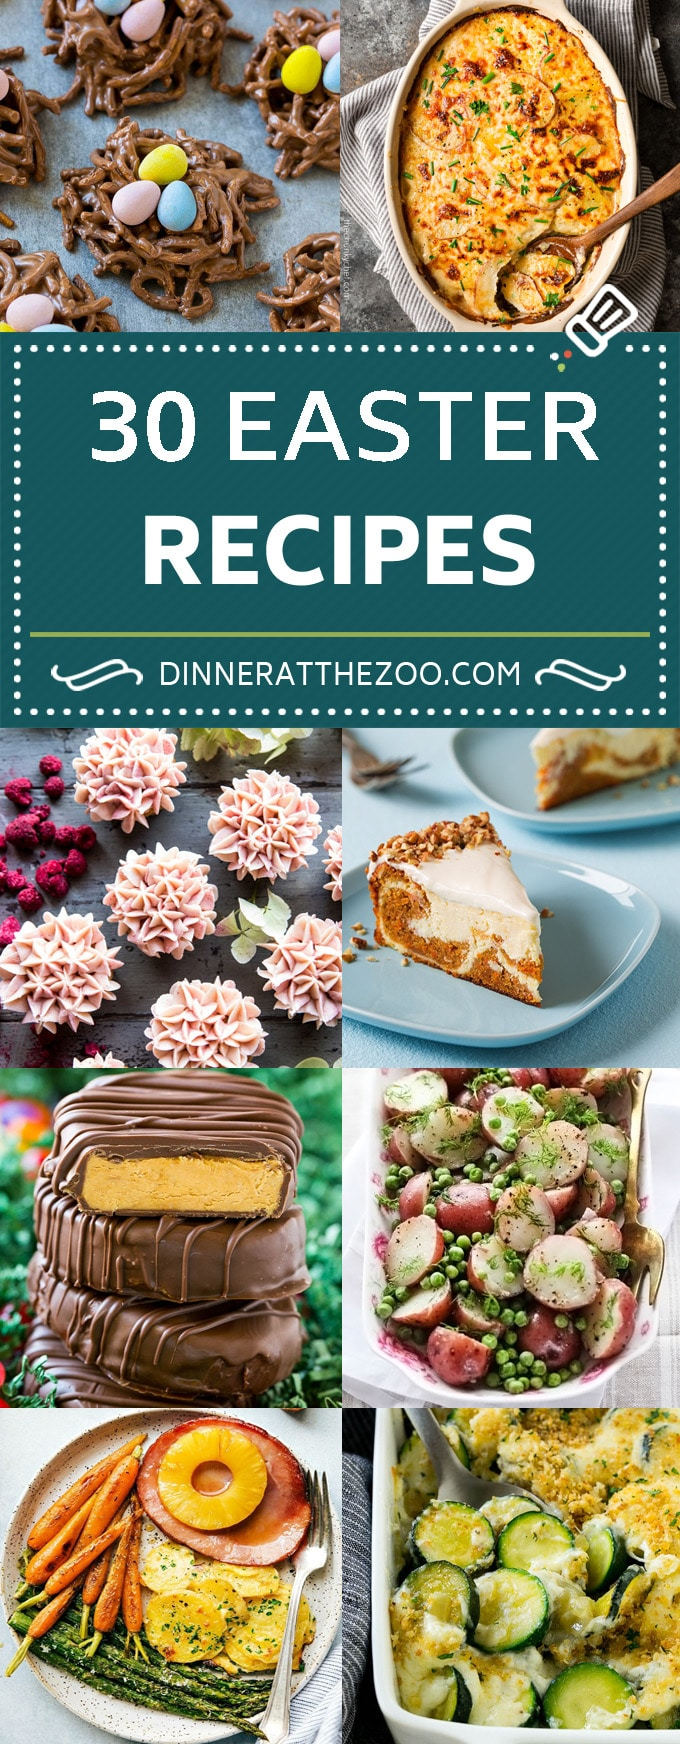 30 Easter Recipes | Easter Main Course | Easter Side Dish | Easter Dessert #easter #easterdinner #ham #sidedish #maincourse #holiday #dessert #dinneratthezoo